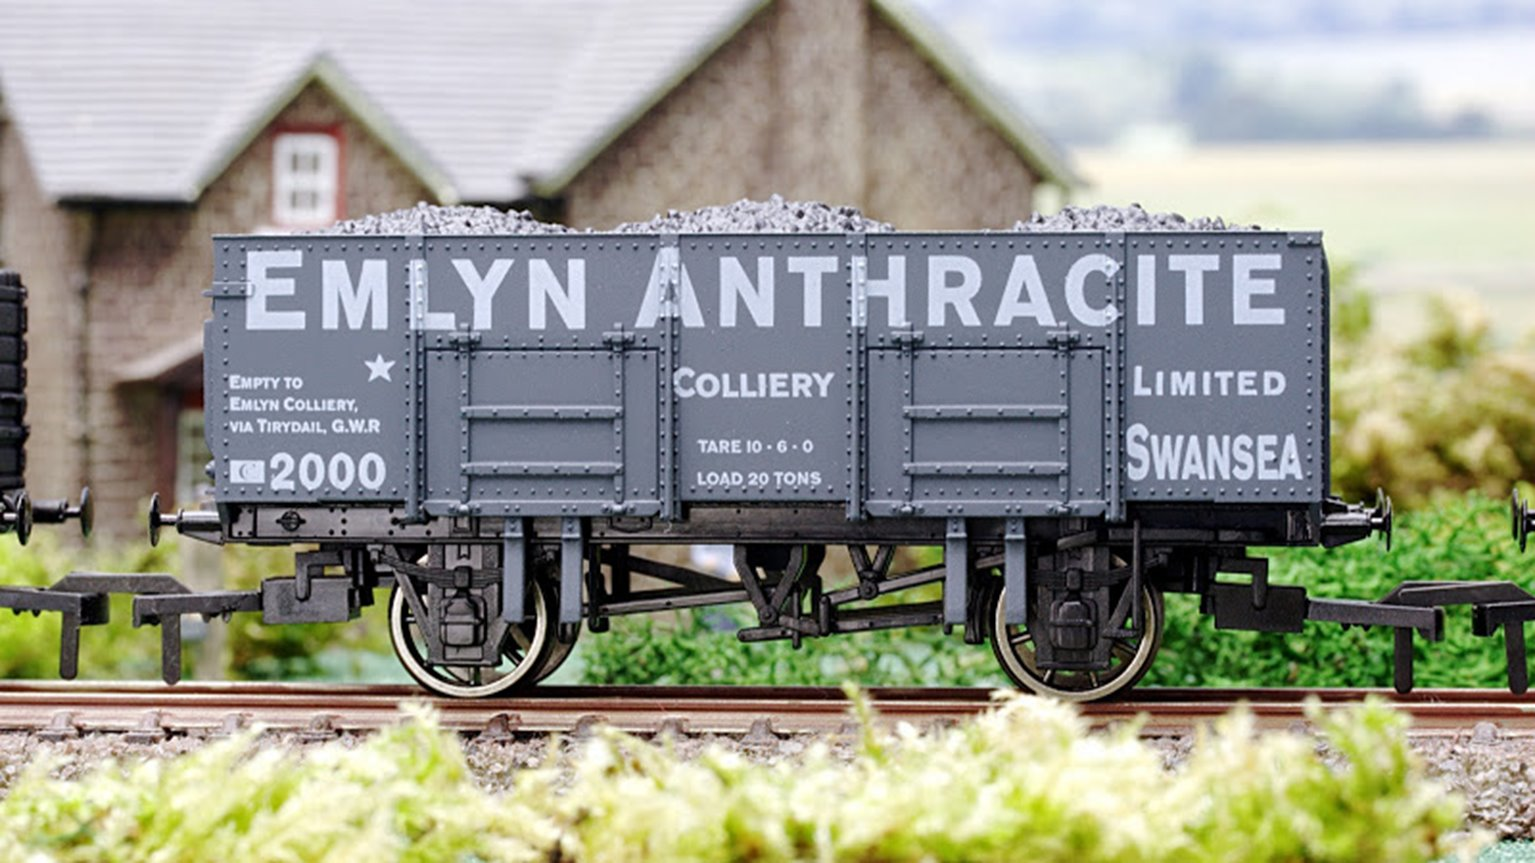 Emlyn Anthracite 20 Ton Steel Mineral Wagon